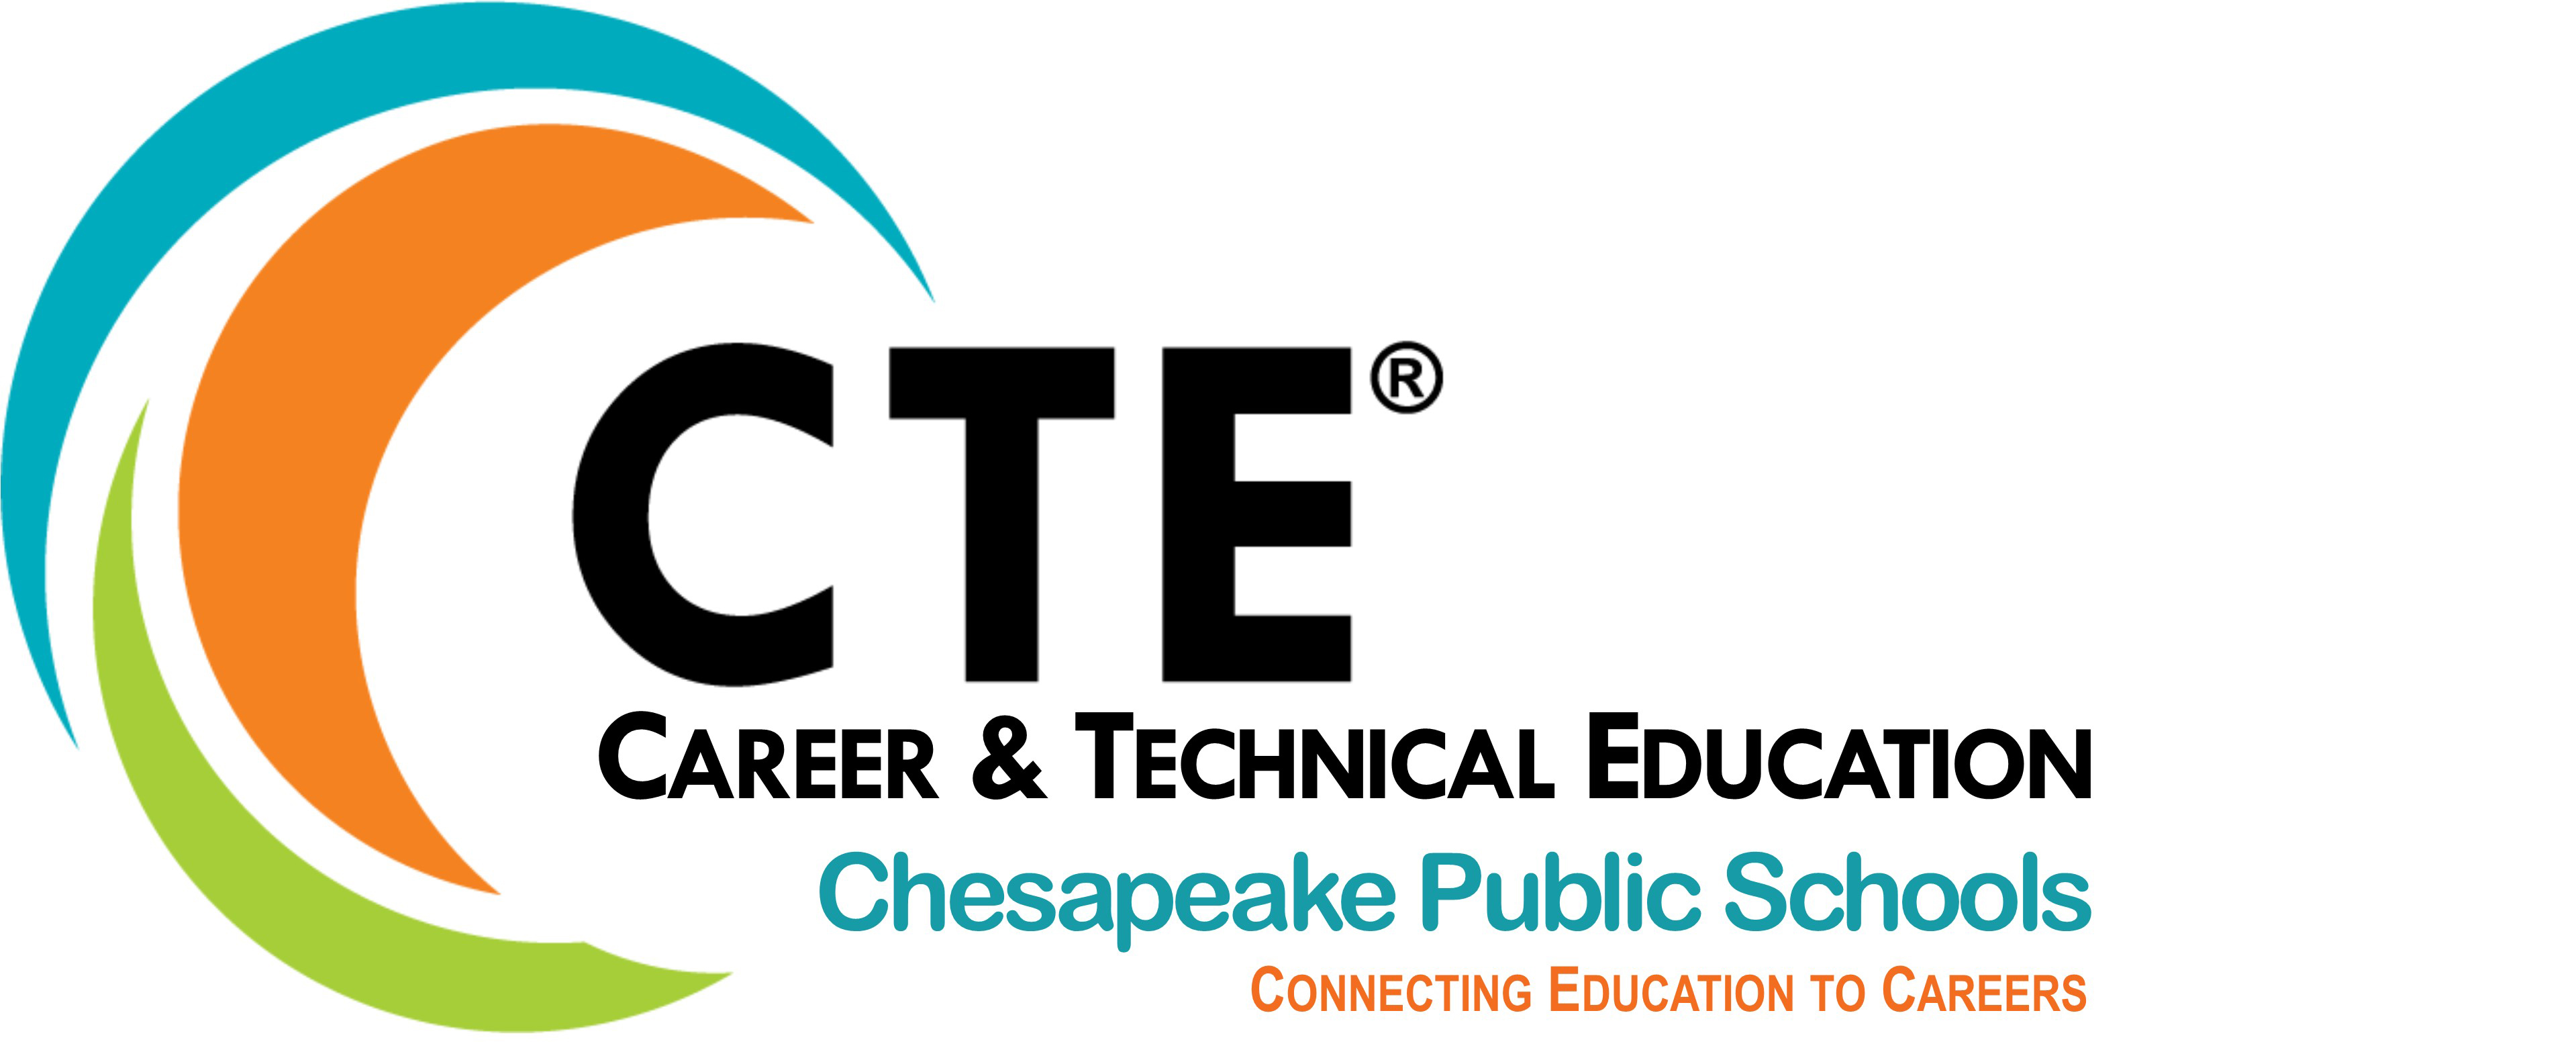 Chesapeake Public Schools Career and Technical Education Virtual Career Fair